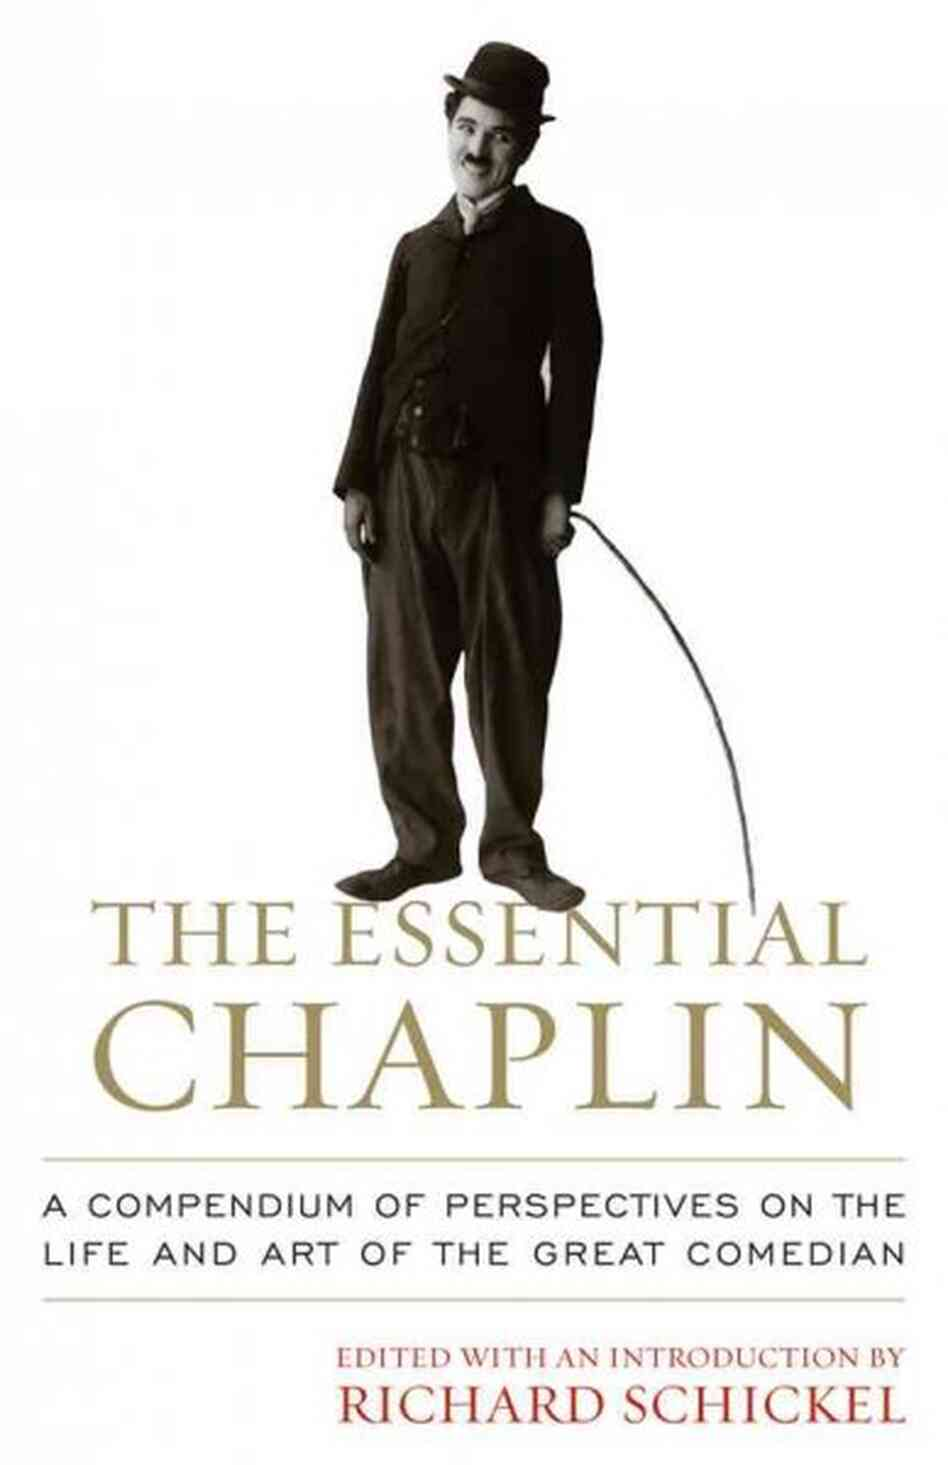 The Essential Chaplin